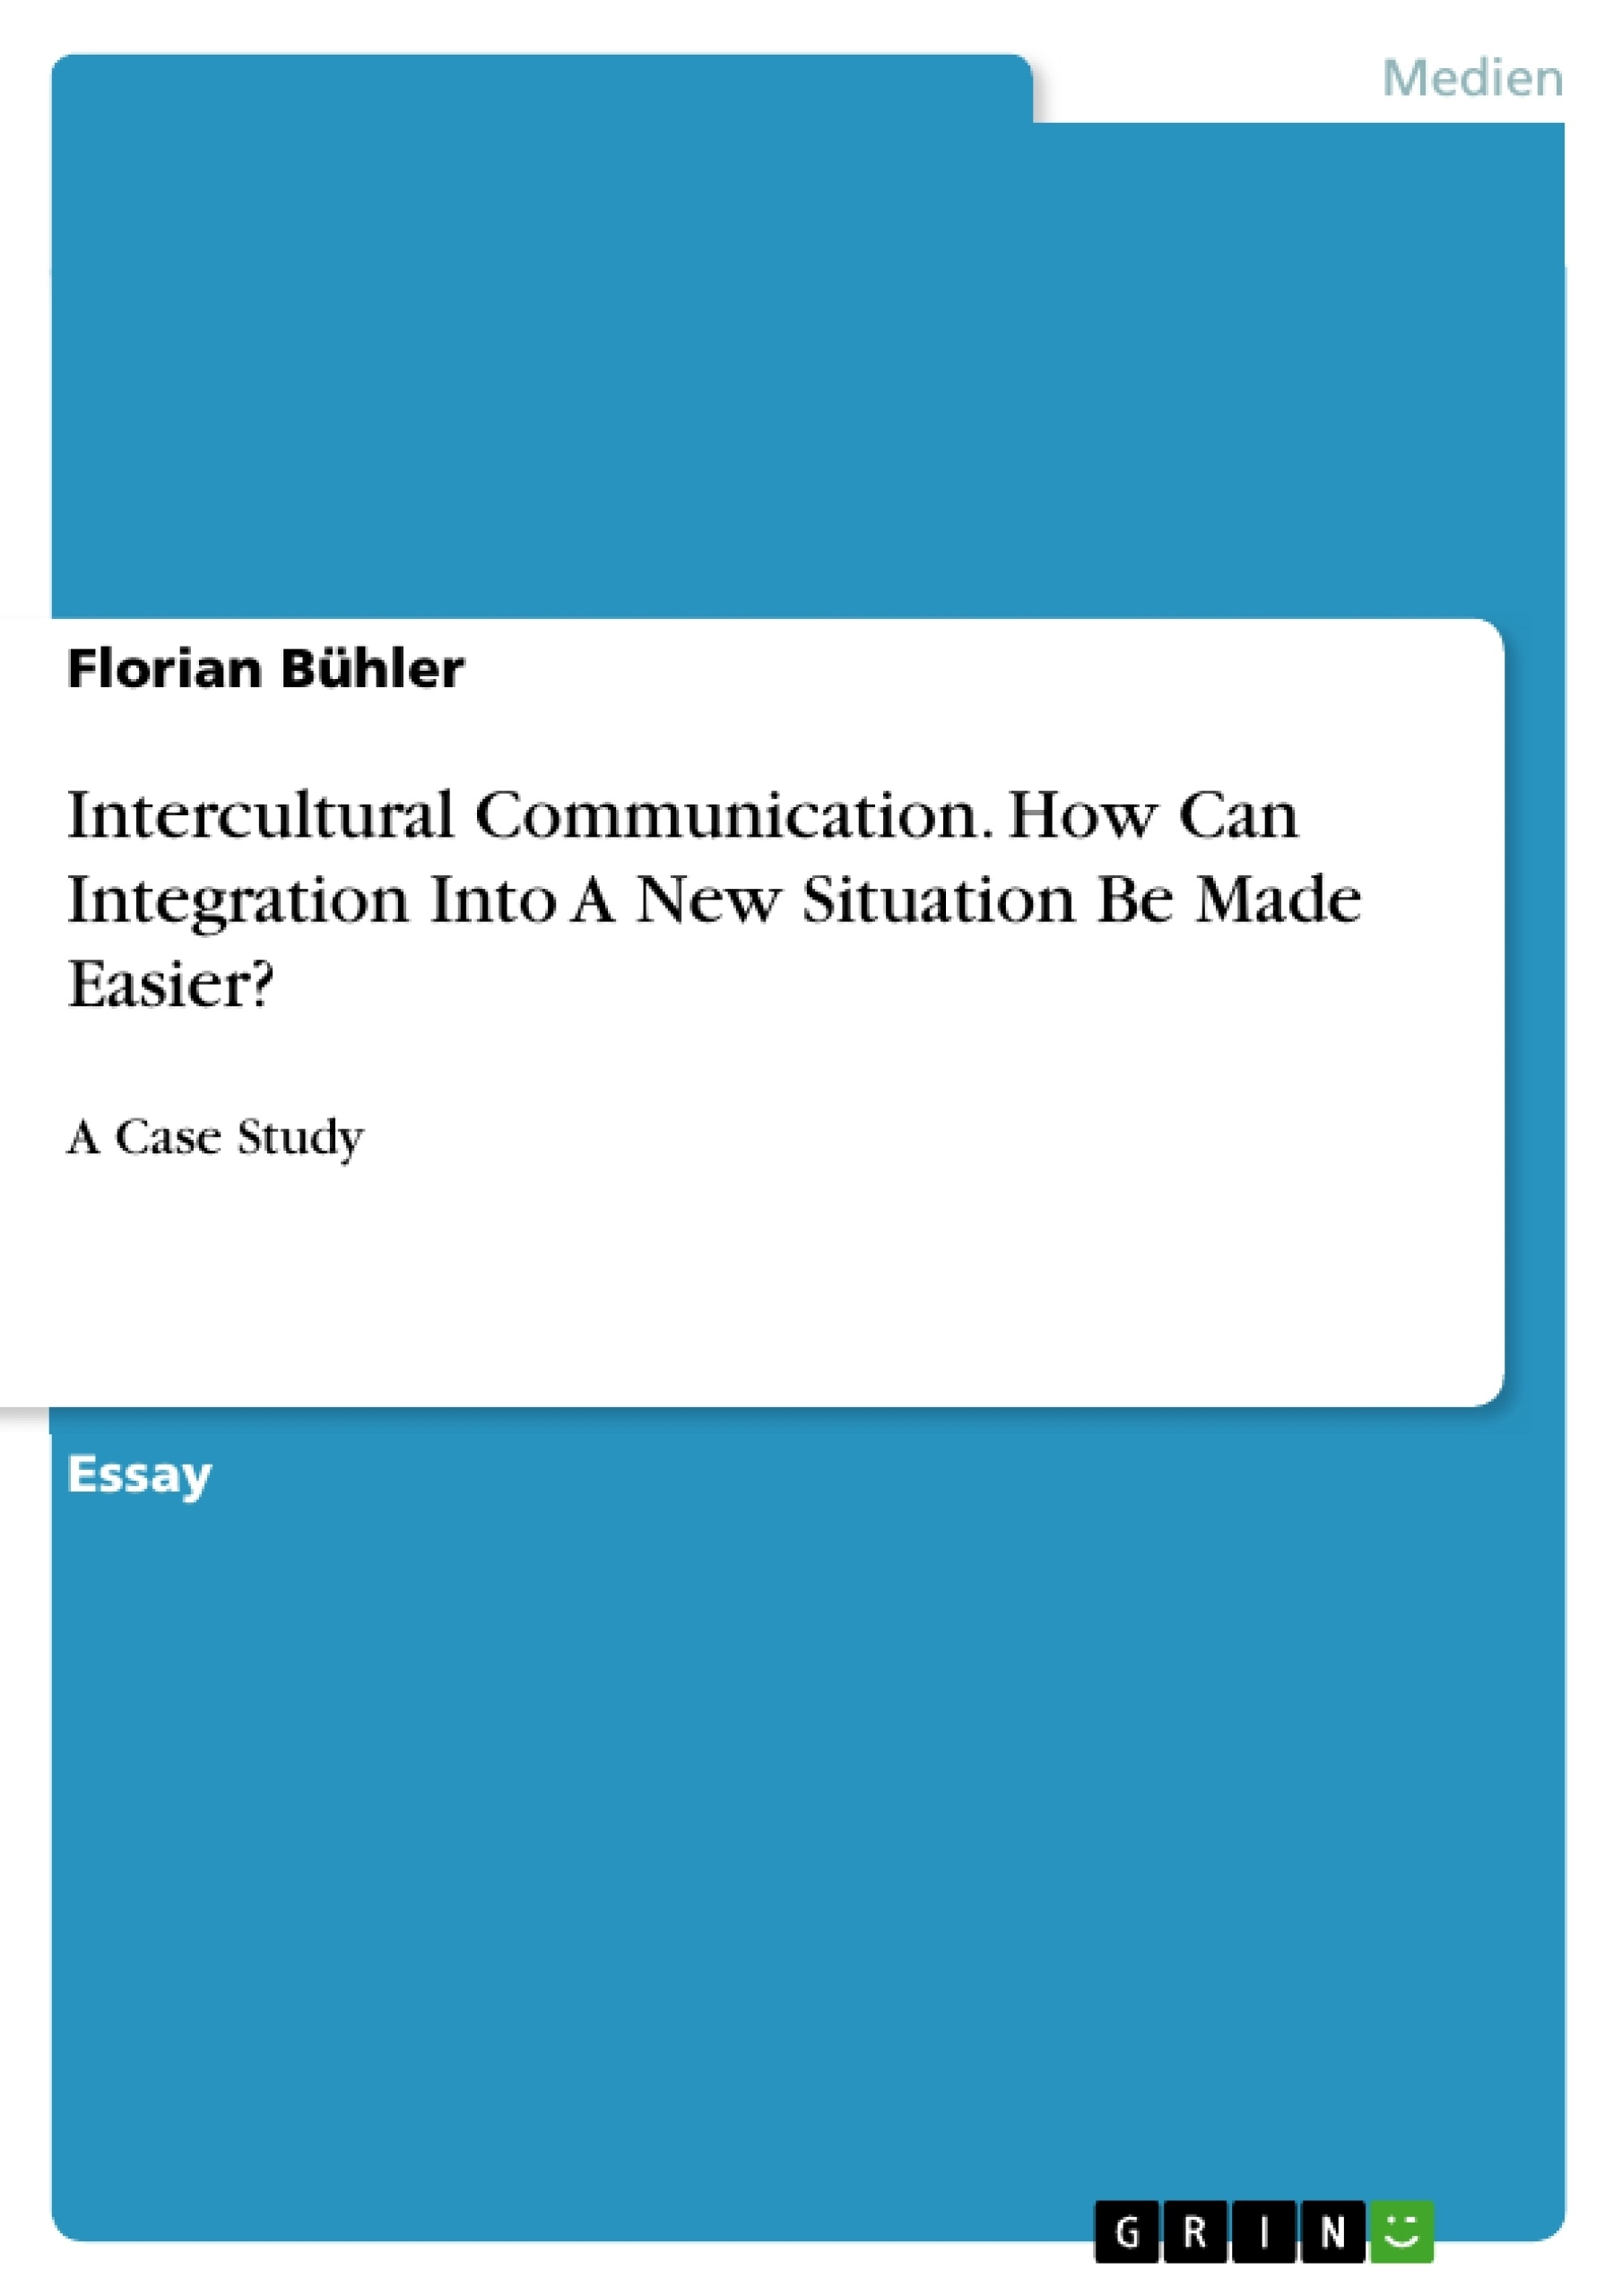 Titel: Intercultural Communication. How Can Integration Into A New Situation Be Made Easier?